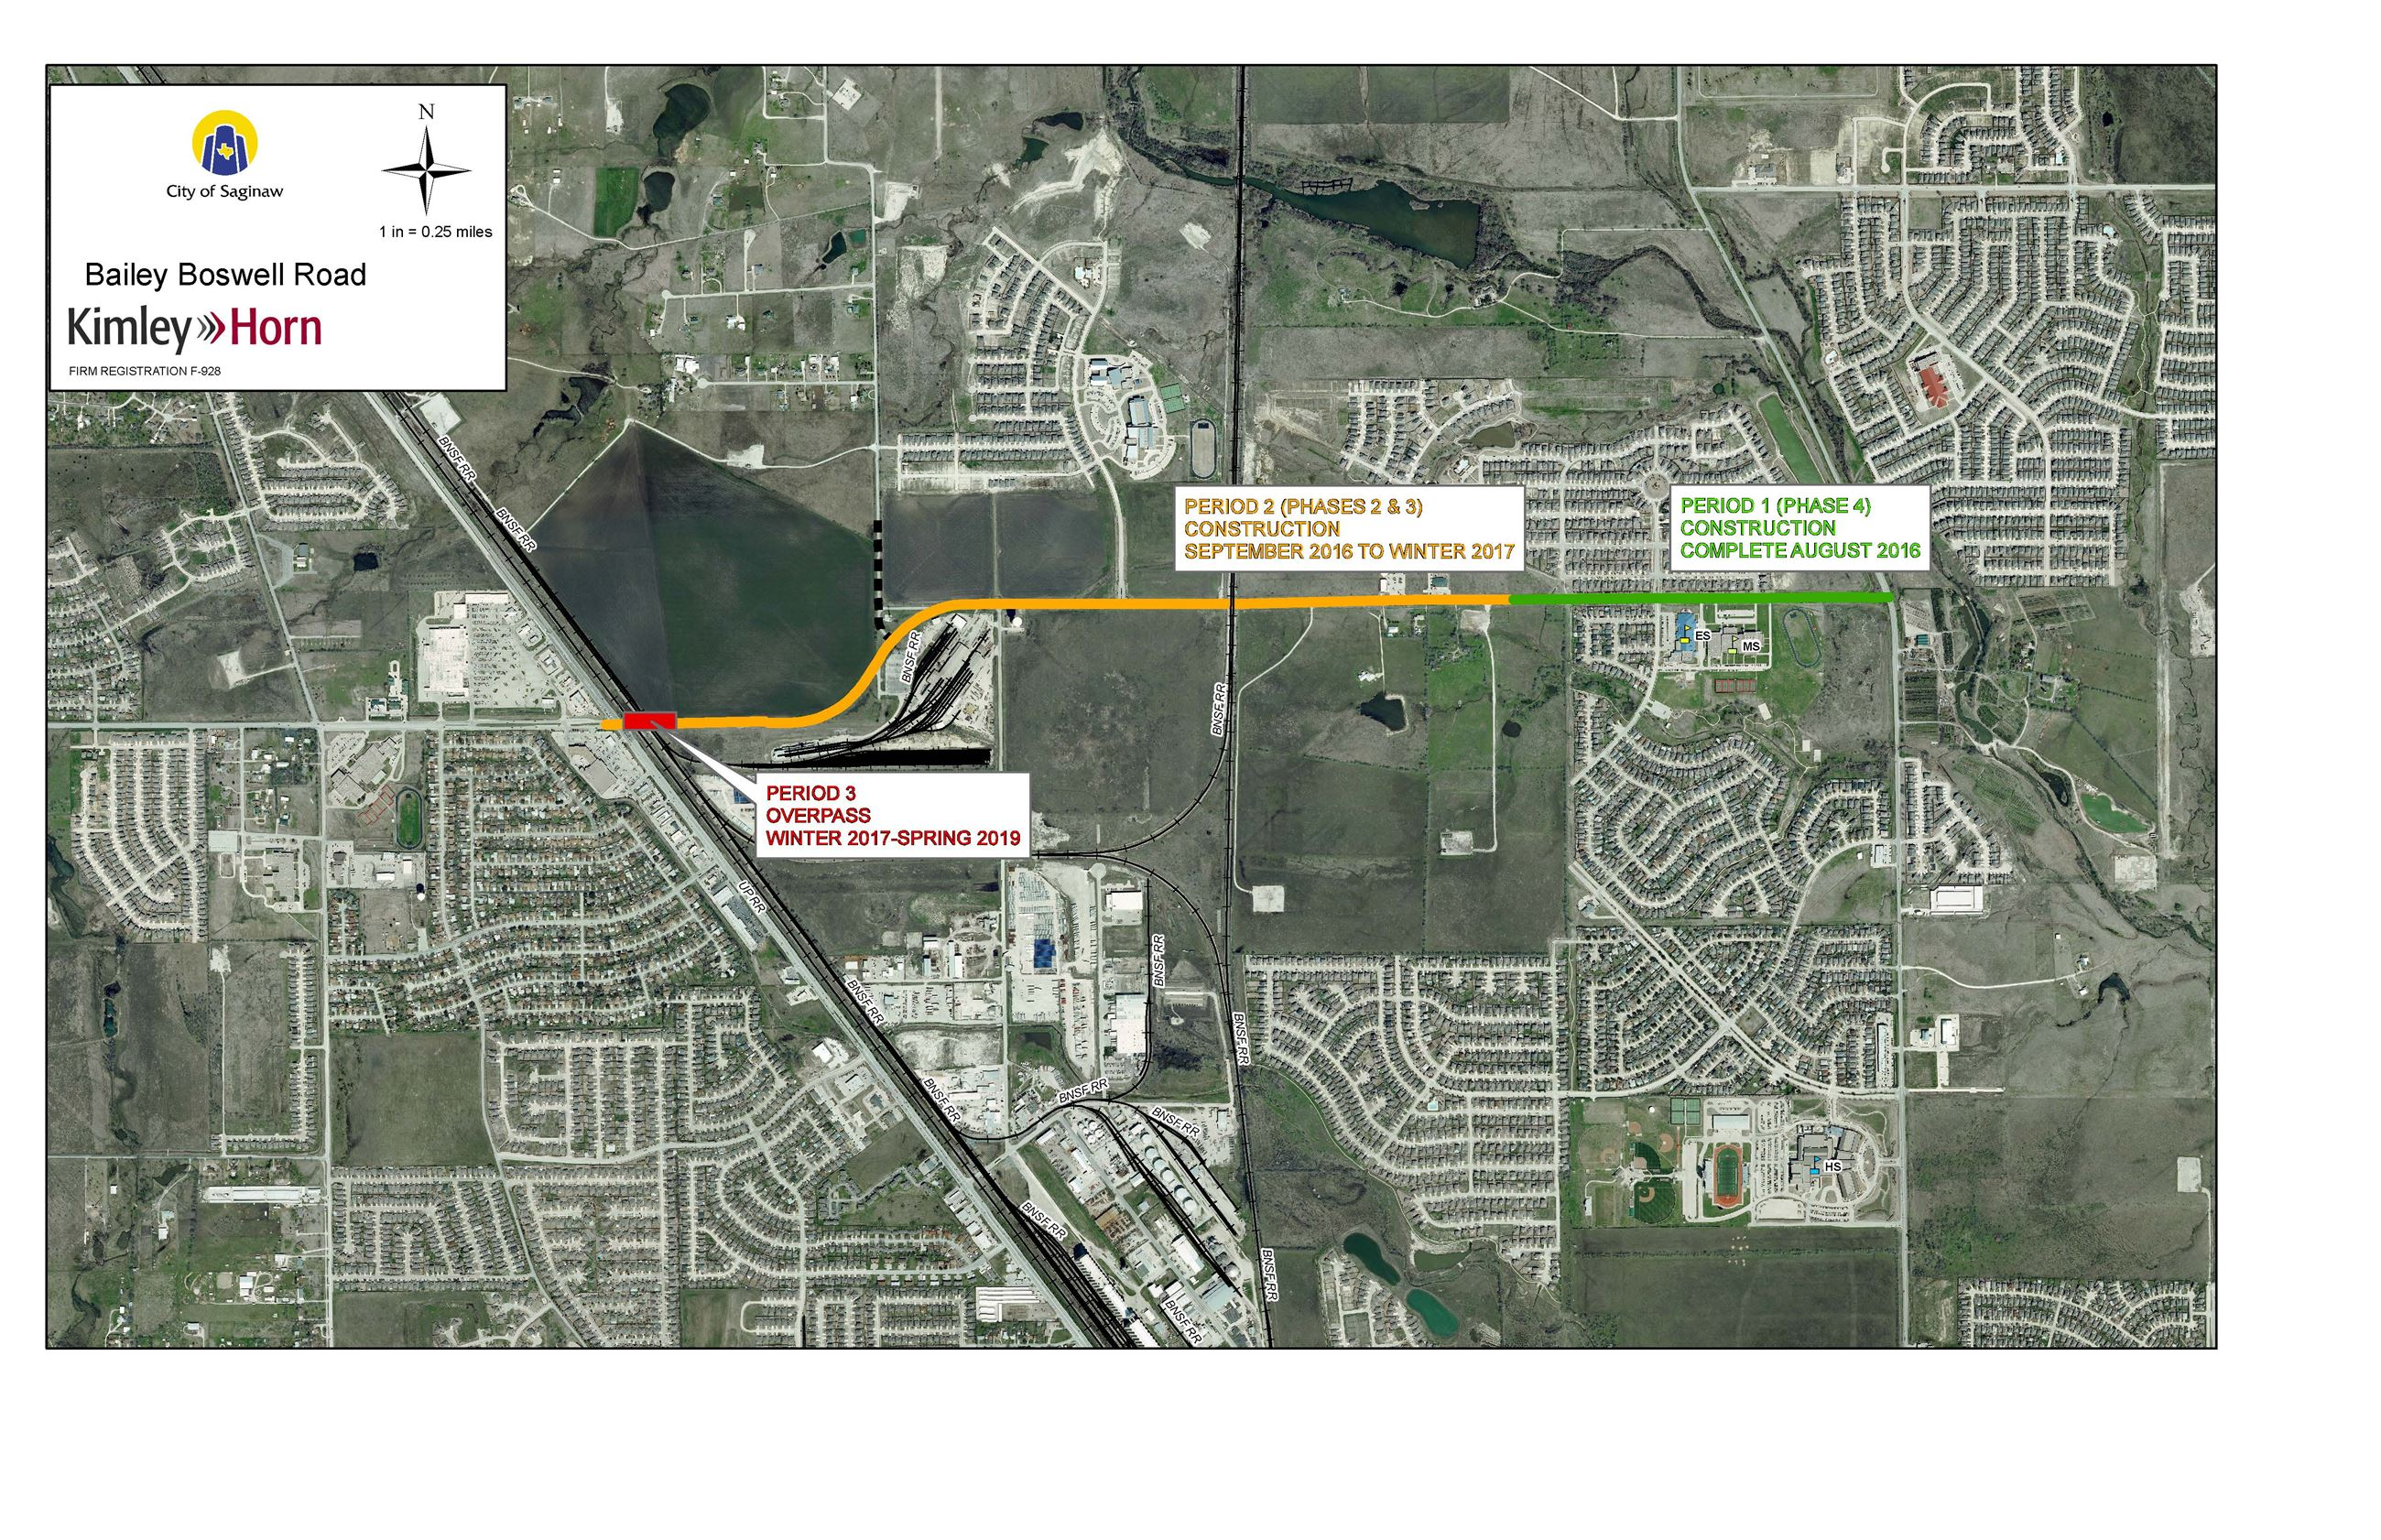 Map of Bailey Boswell Road and Bridge Project